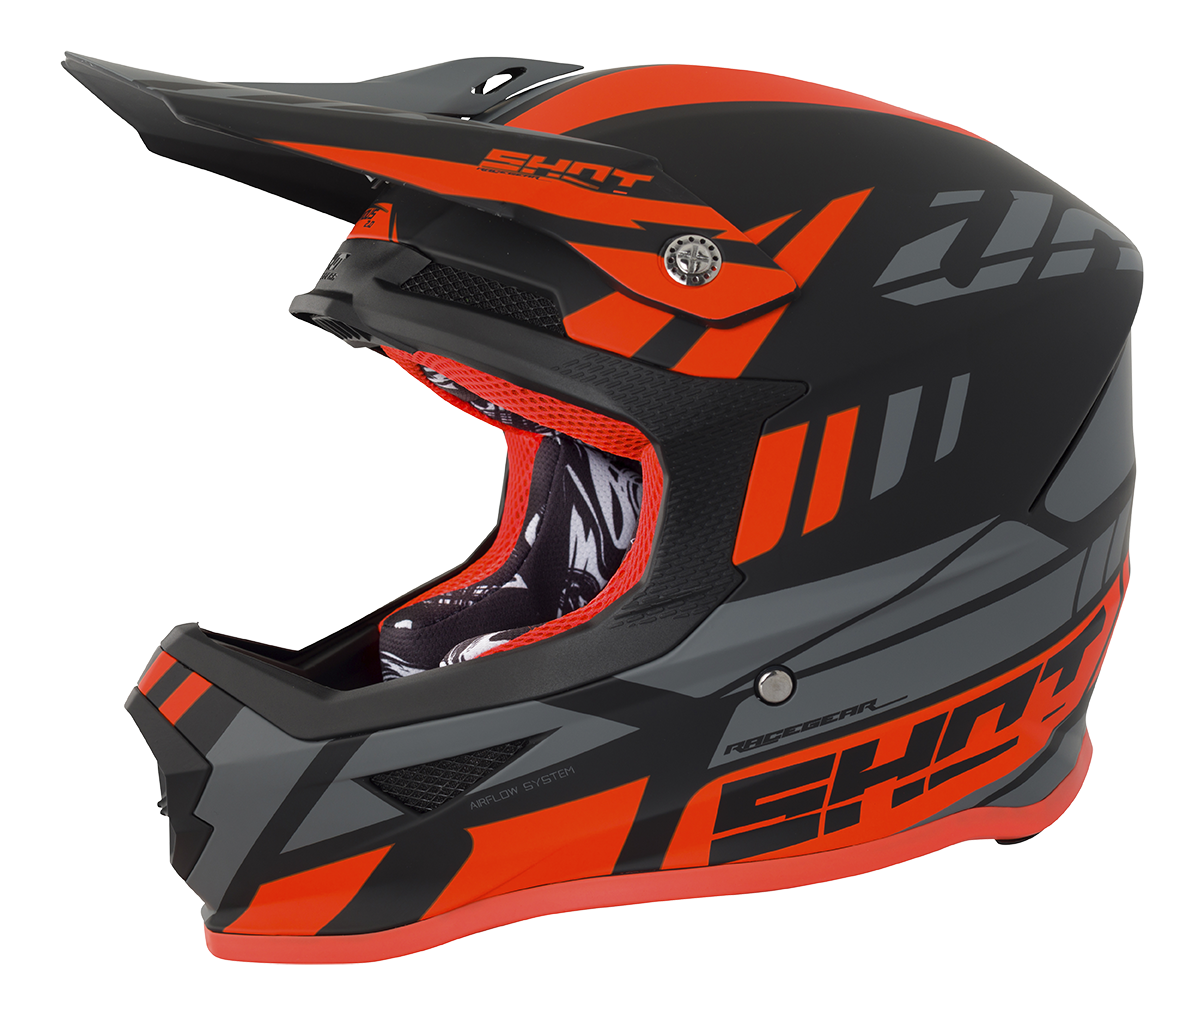 SHOT RACE GEAR 2018  HELMA FURIOUS RIOT - NEON ORANGE MATT